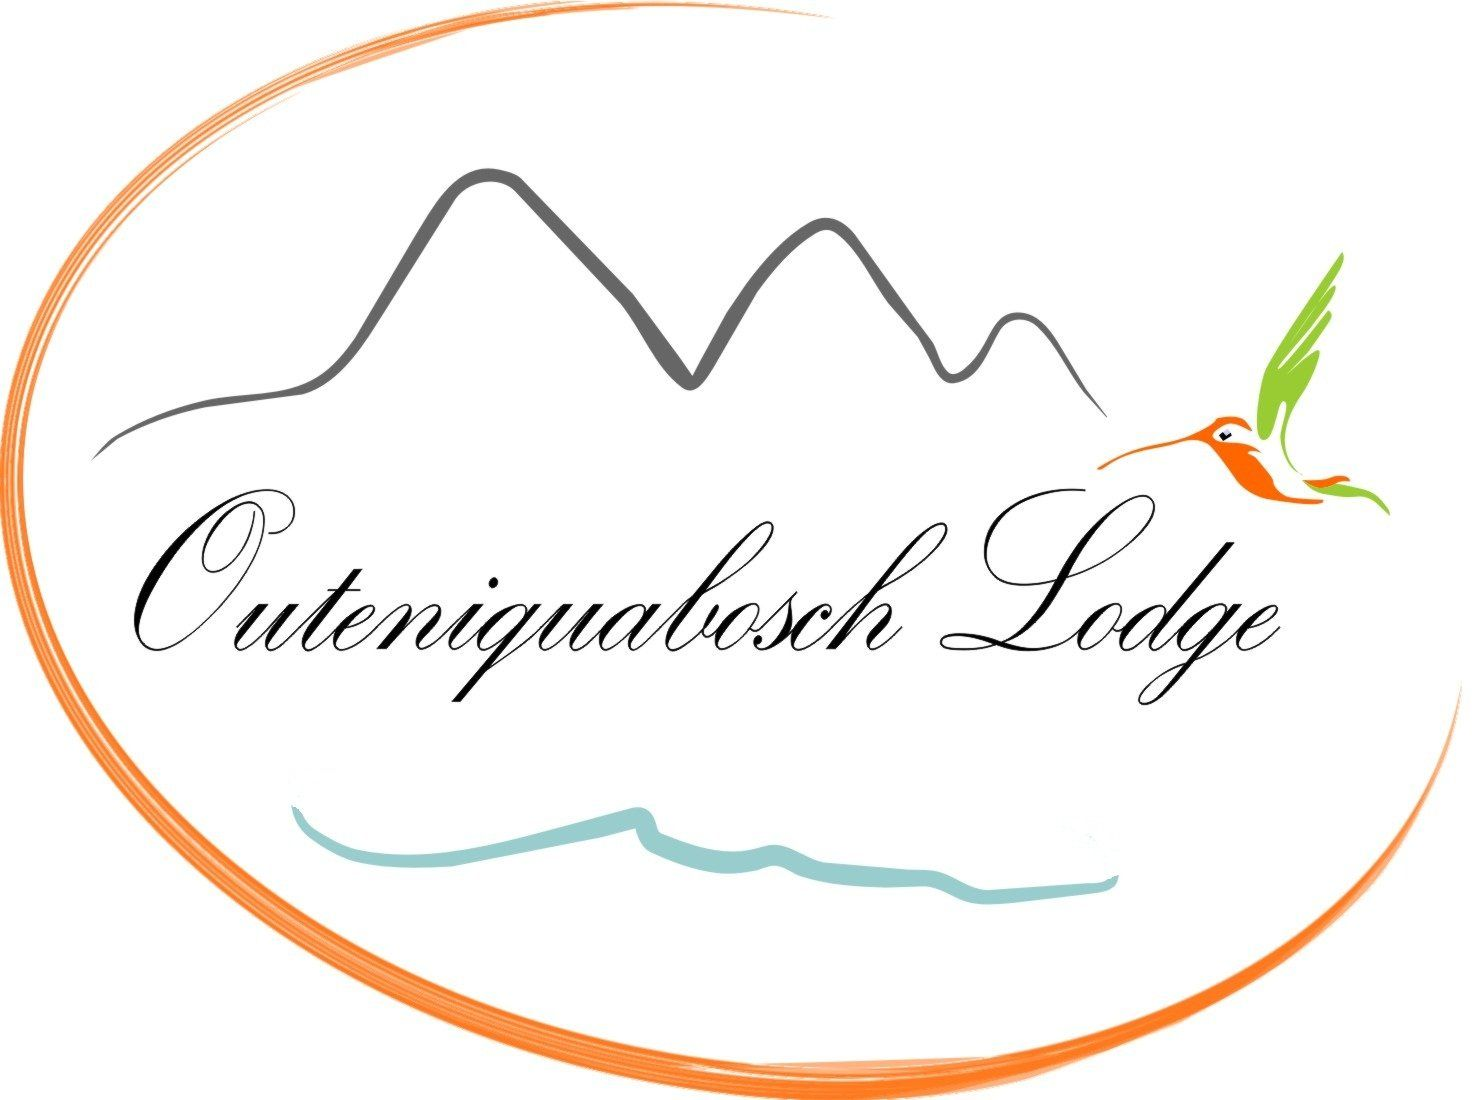 Outeniquabosch Lodge